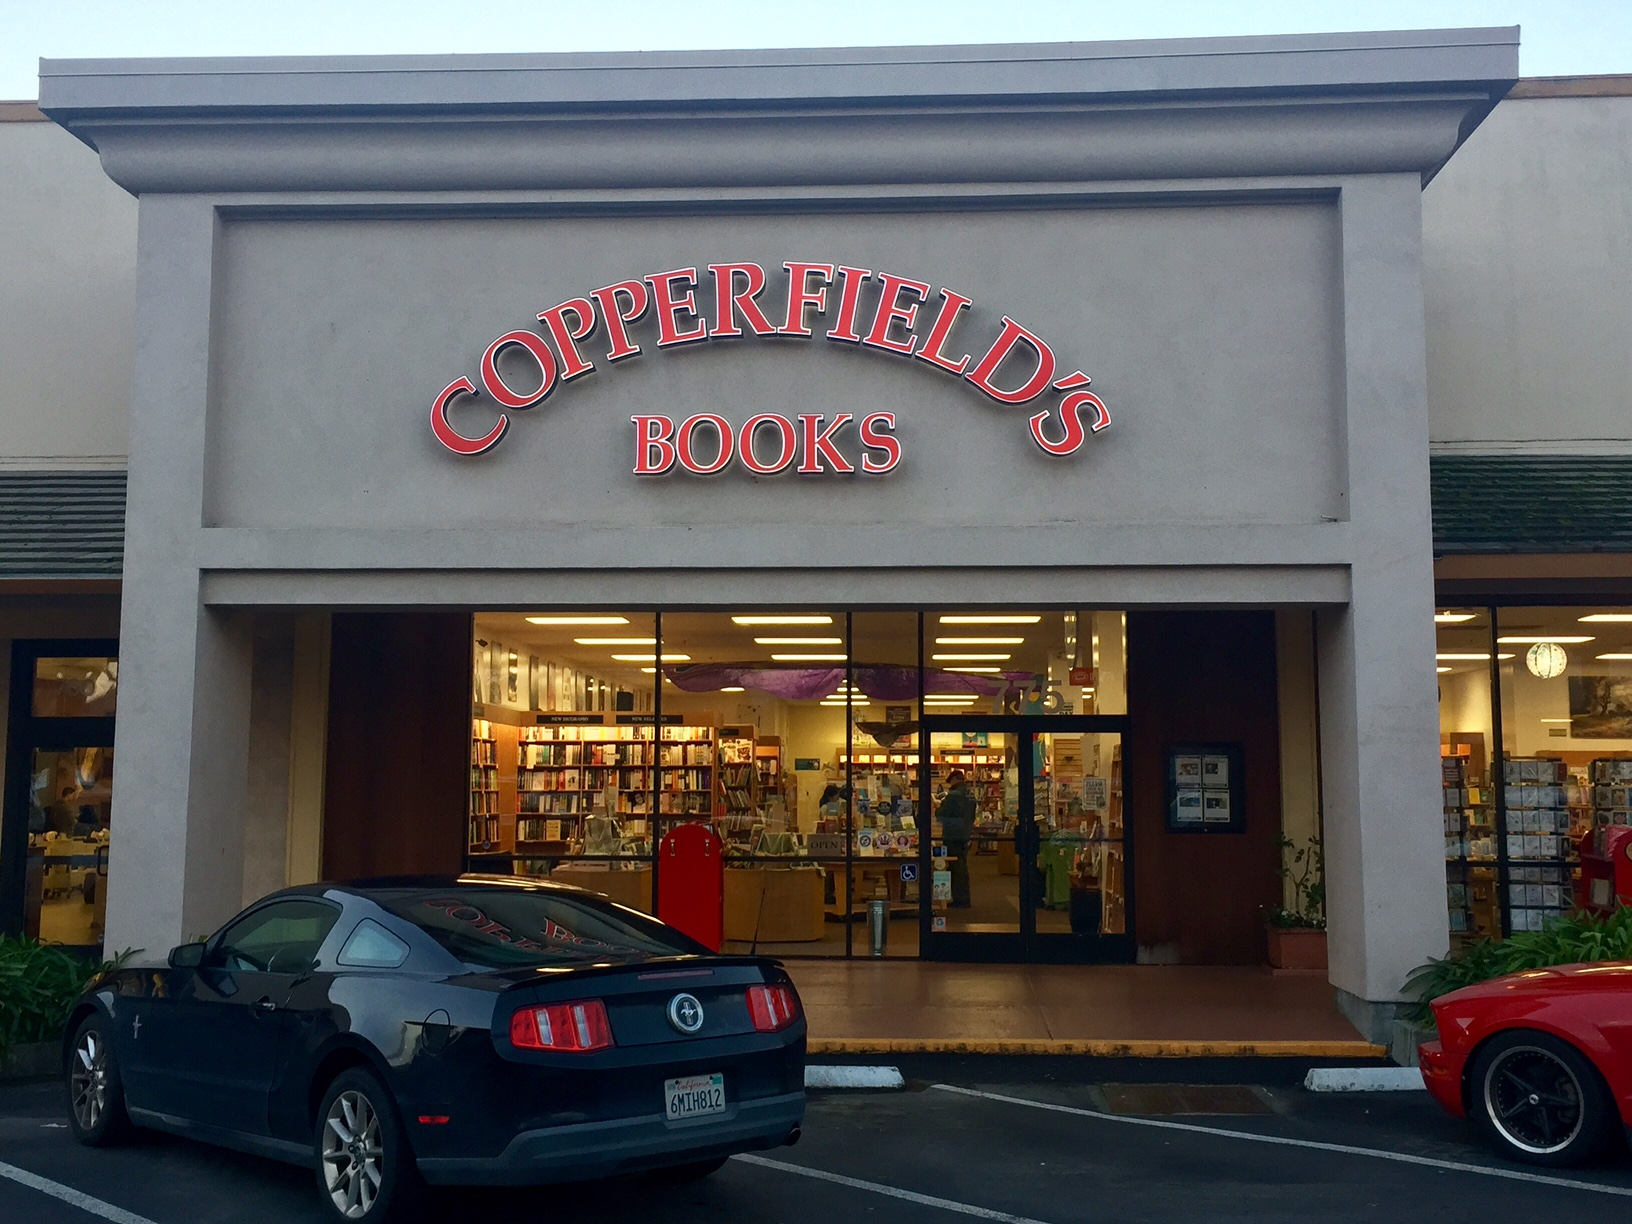 Copperfield's Books image 9